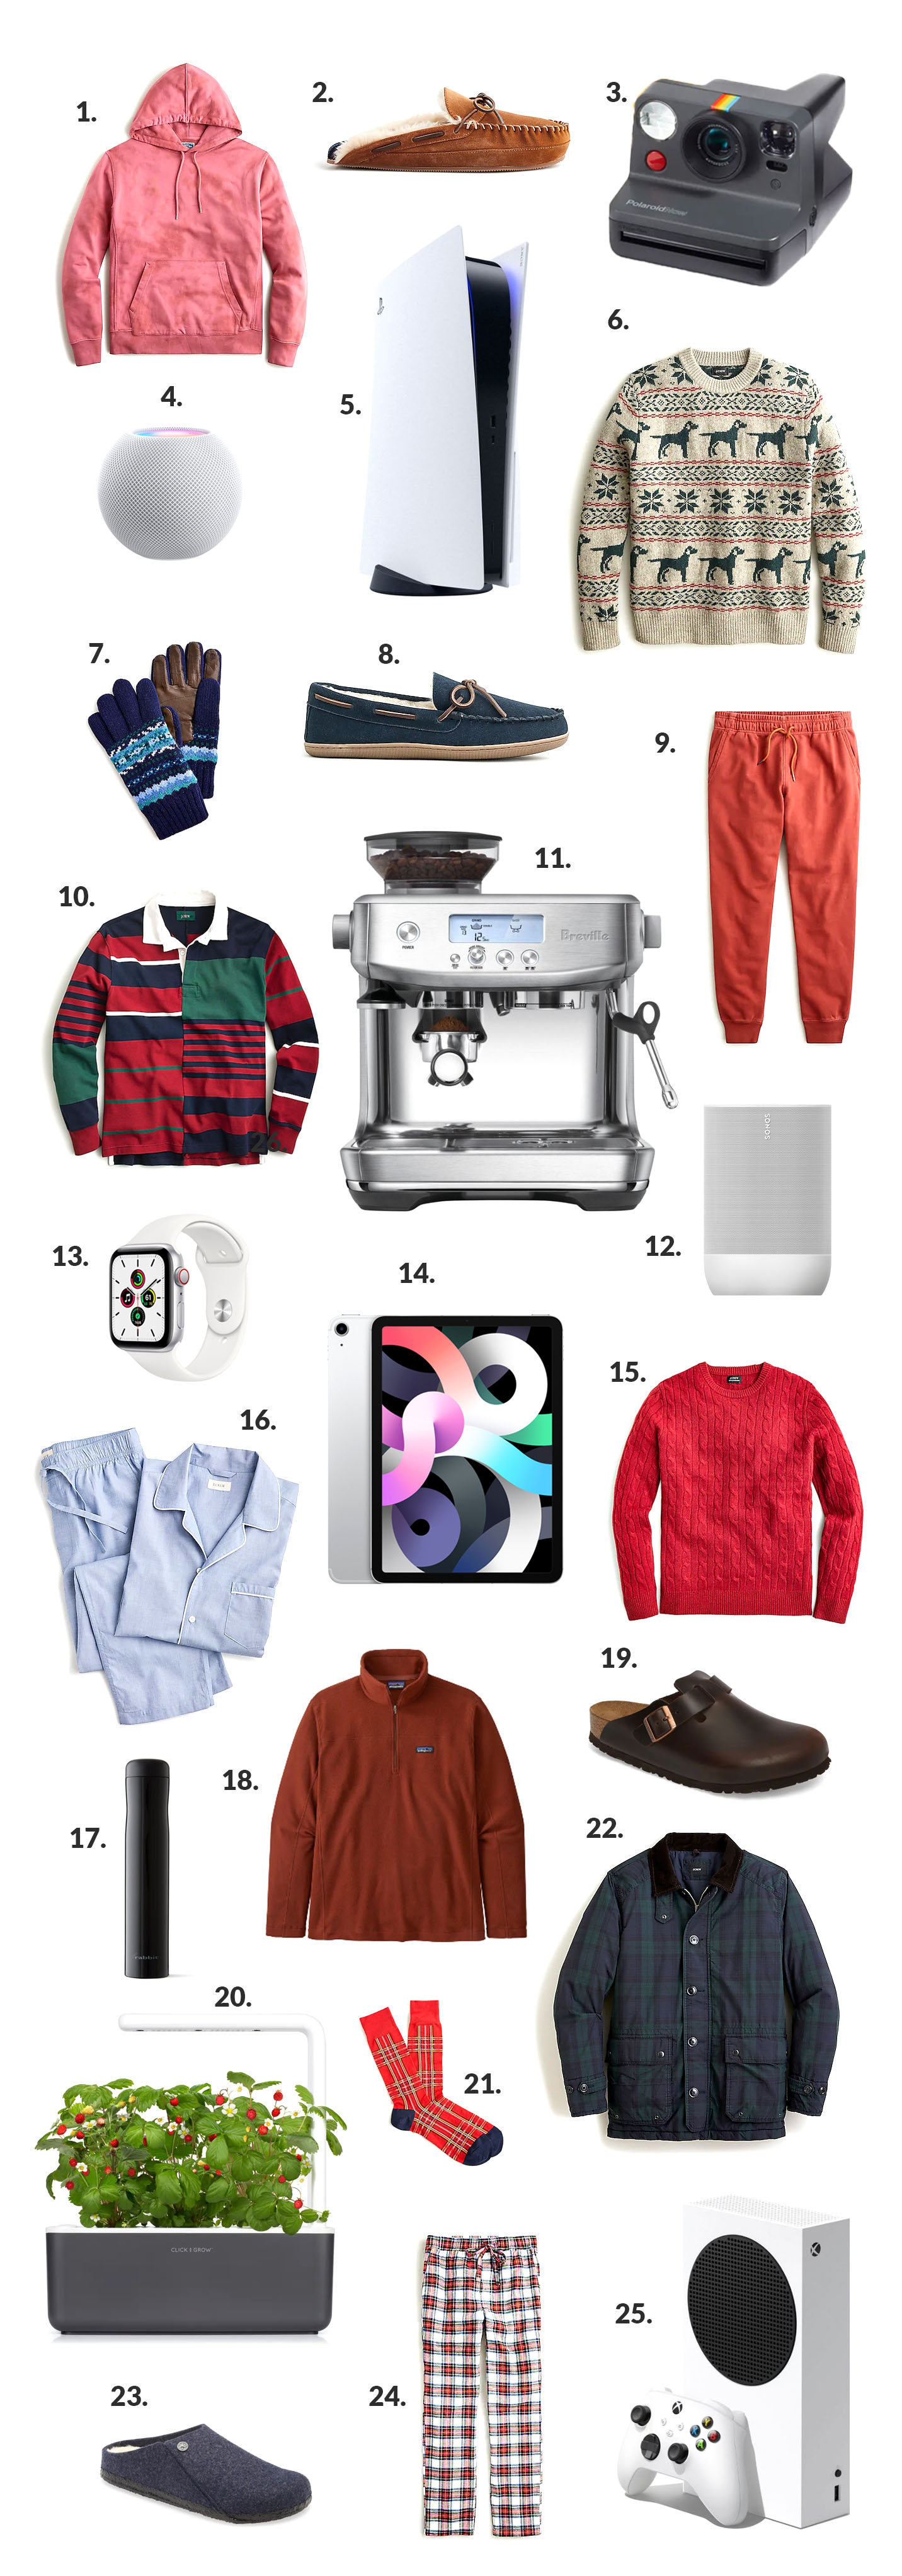 Preppy Mens Holiday Gift Guide